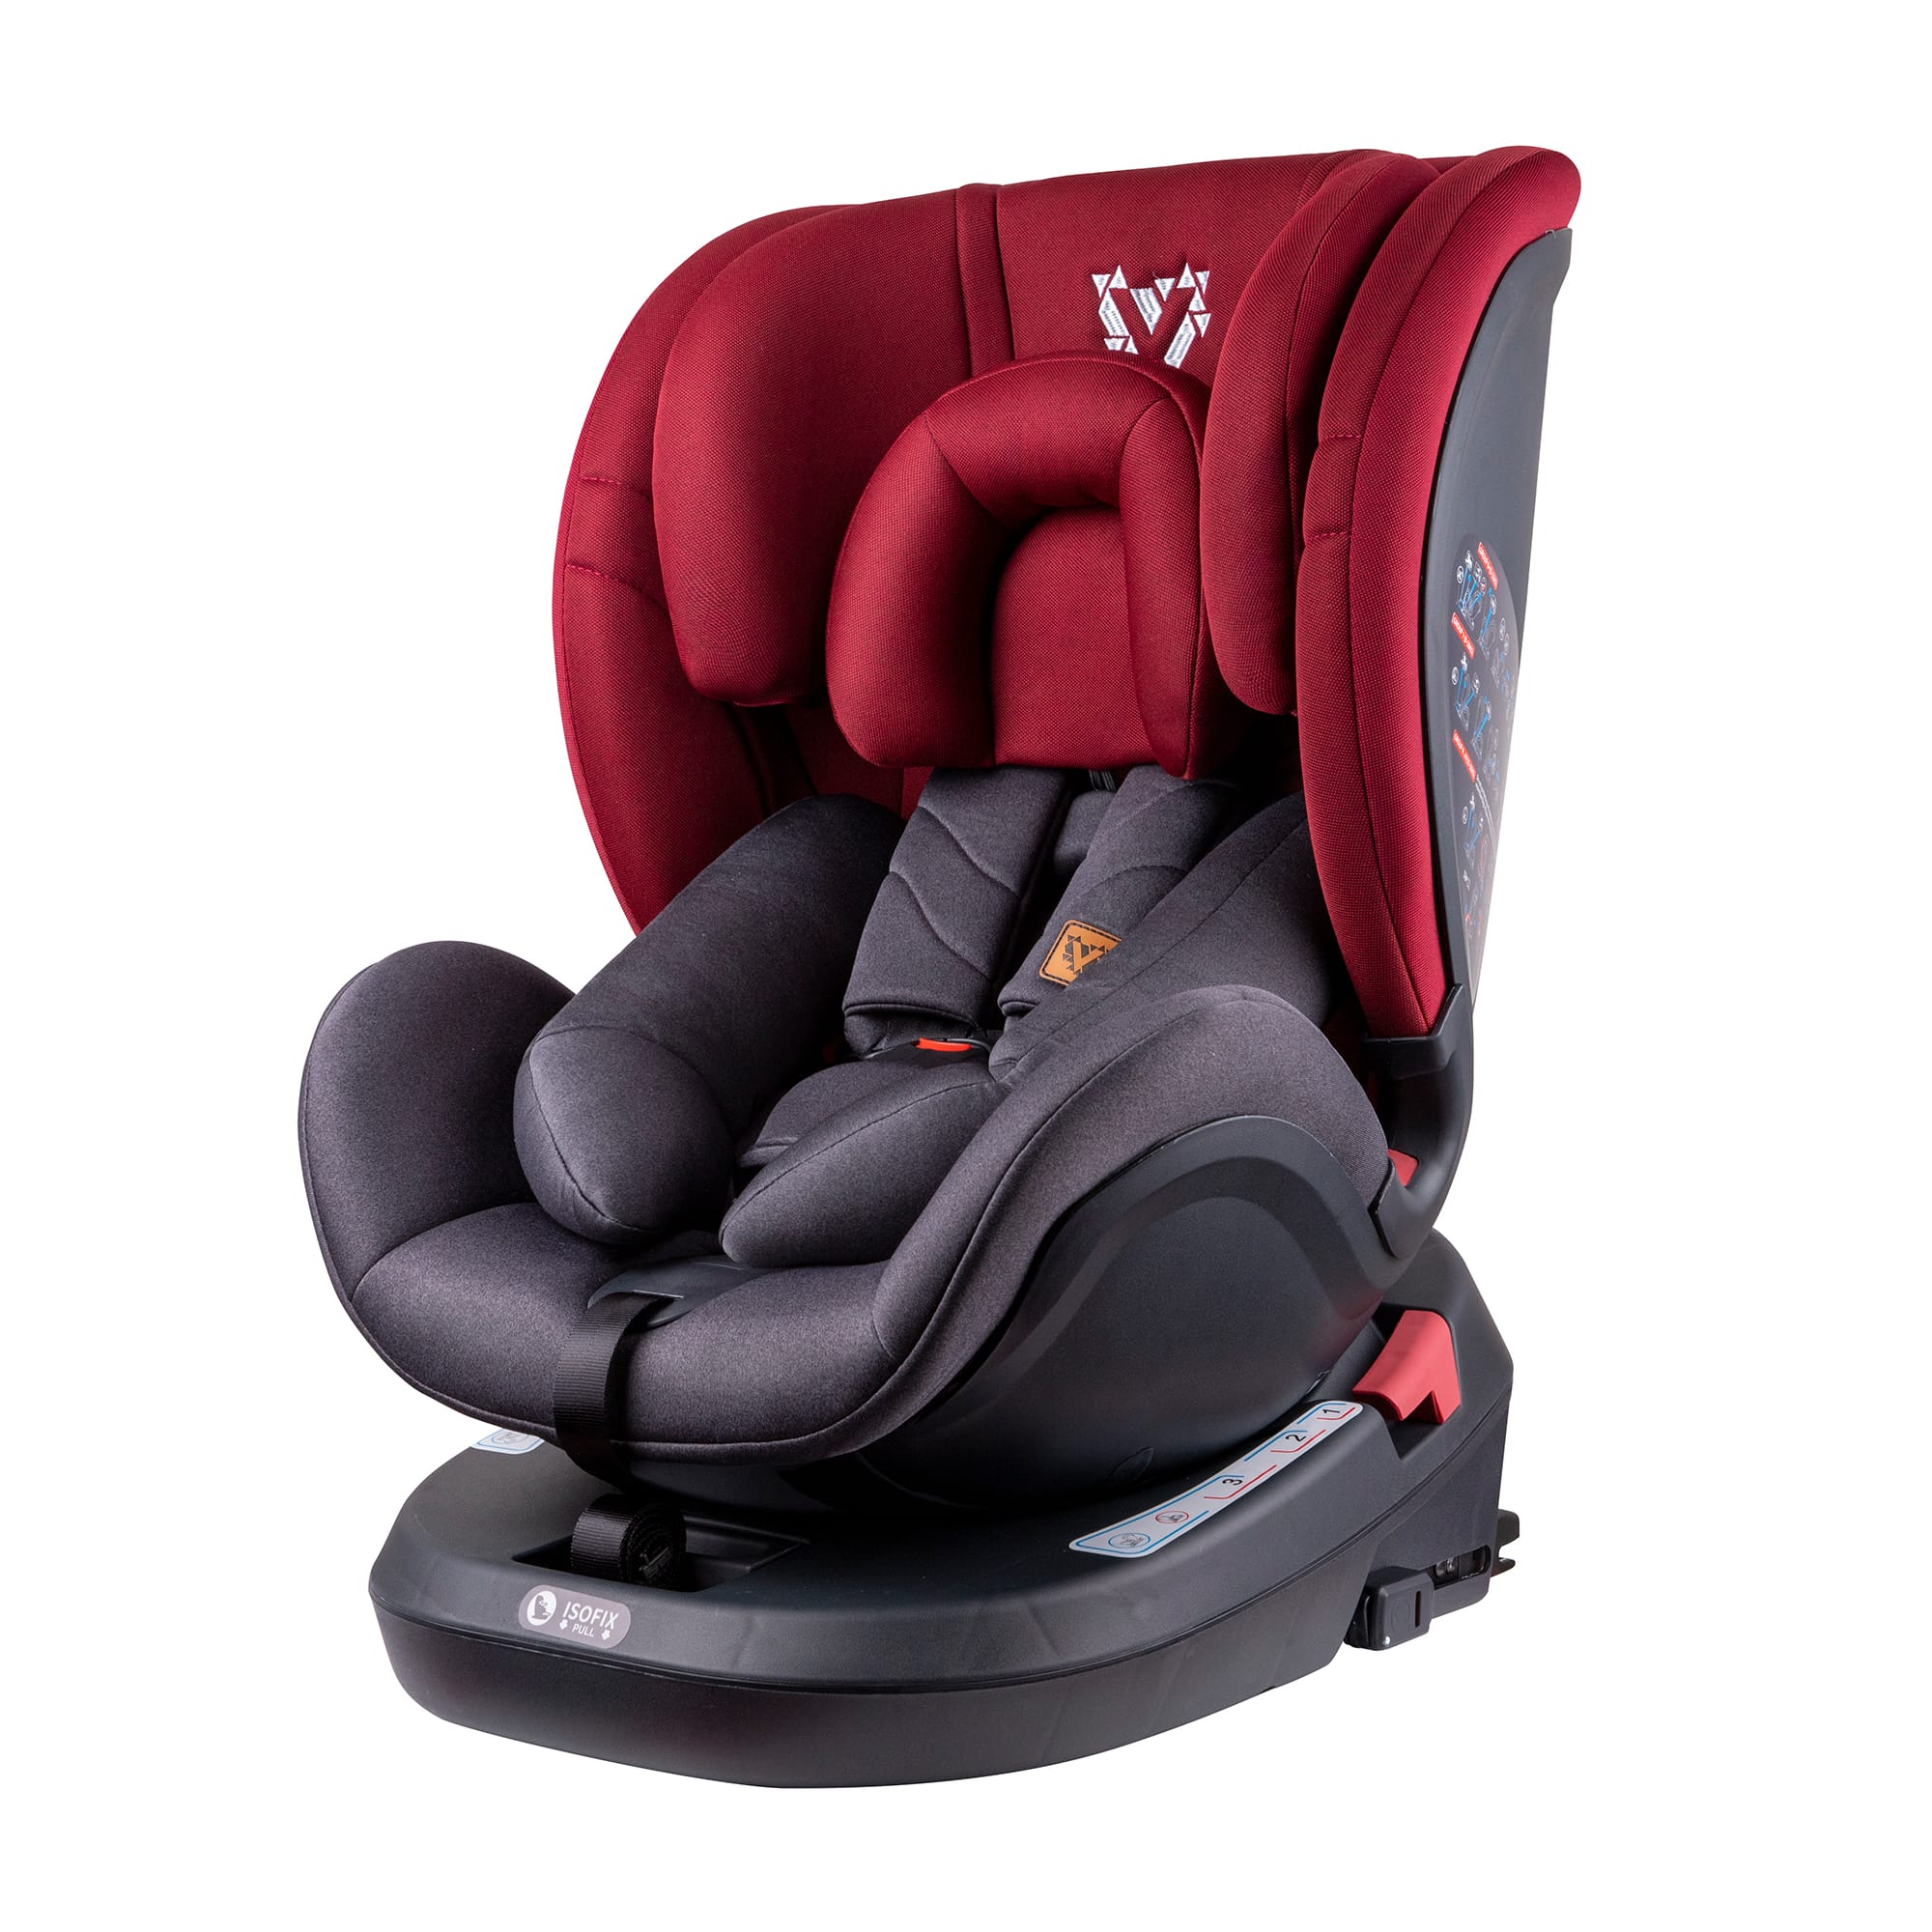 Venture Fusion Car Seat in Red